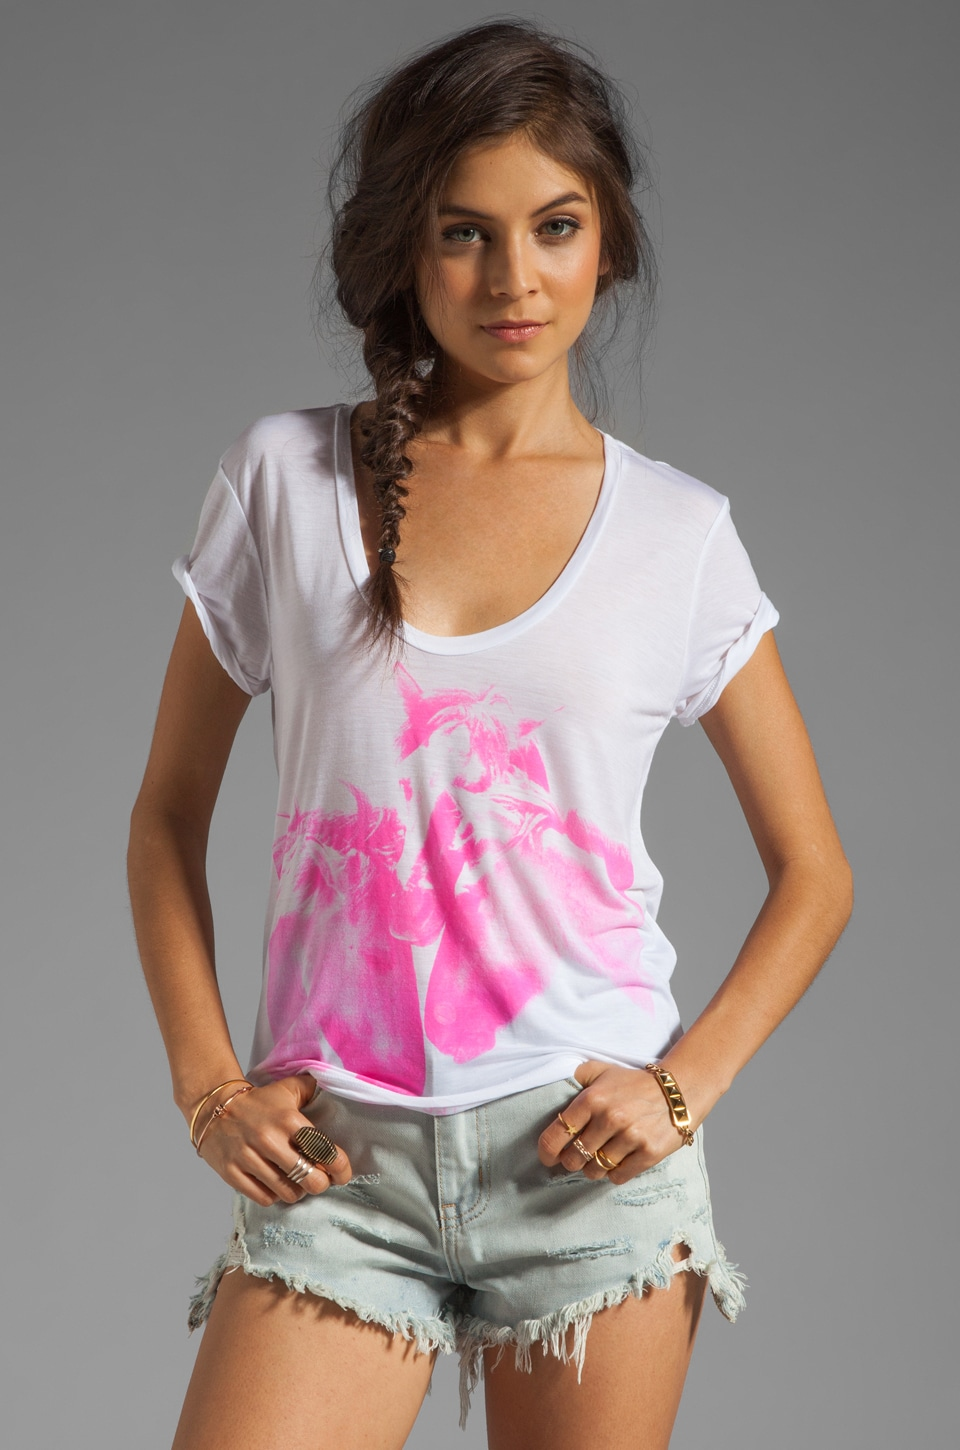 291 Wild Horses Uneven Hem Tee in White